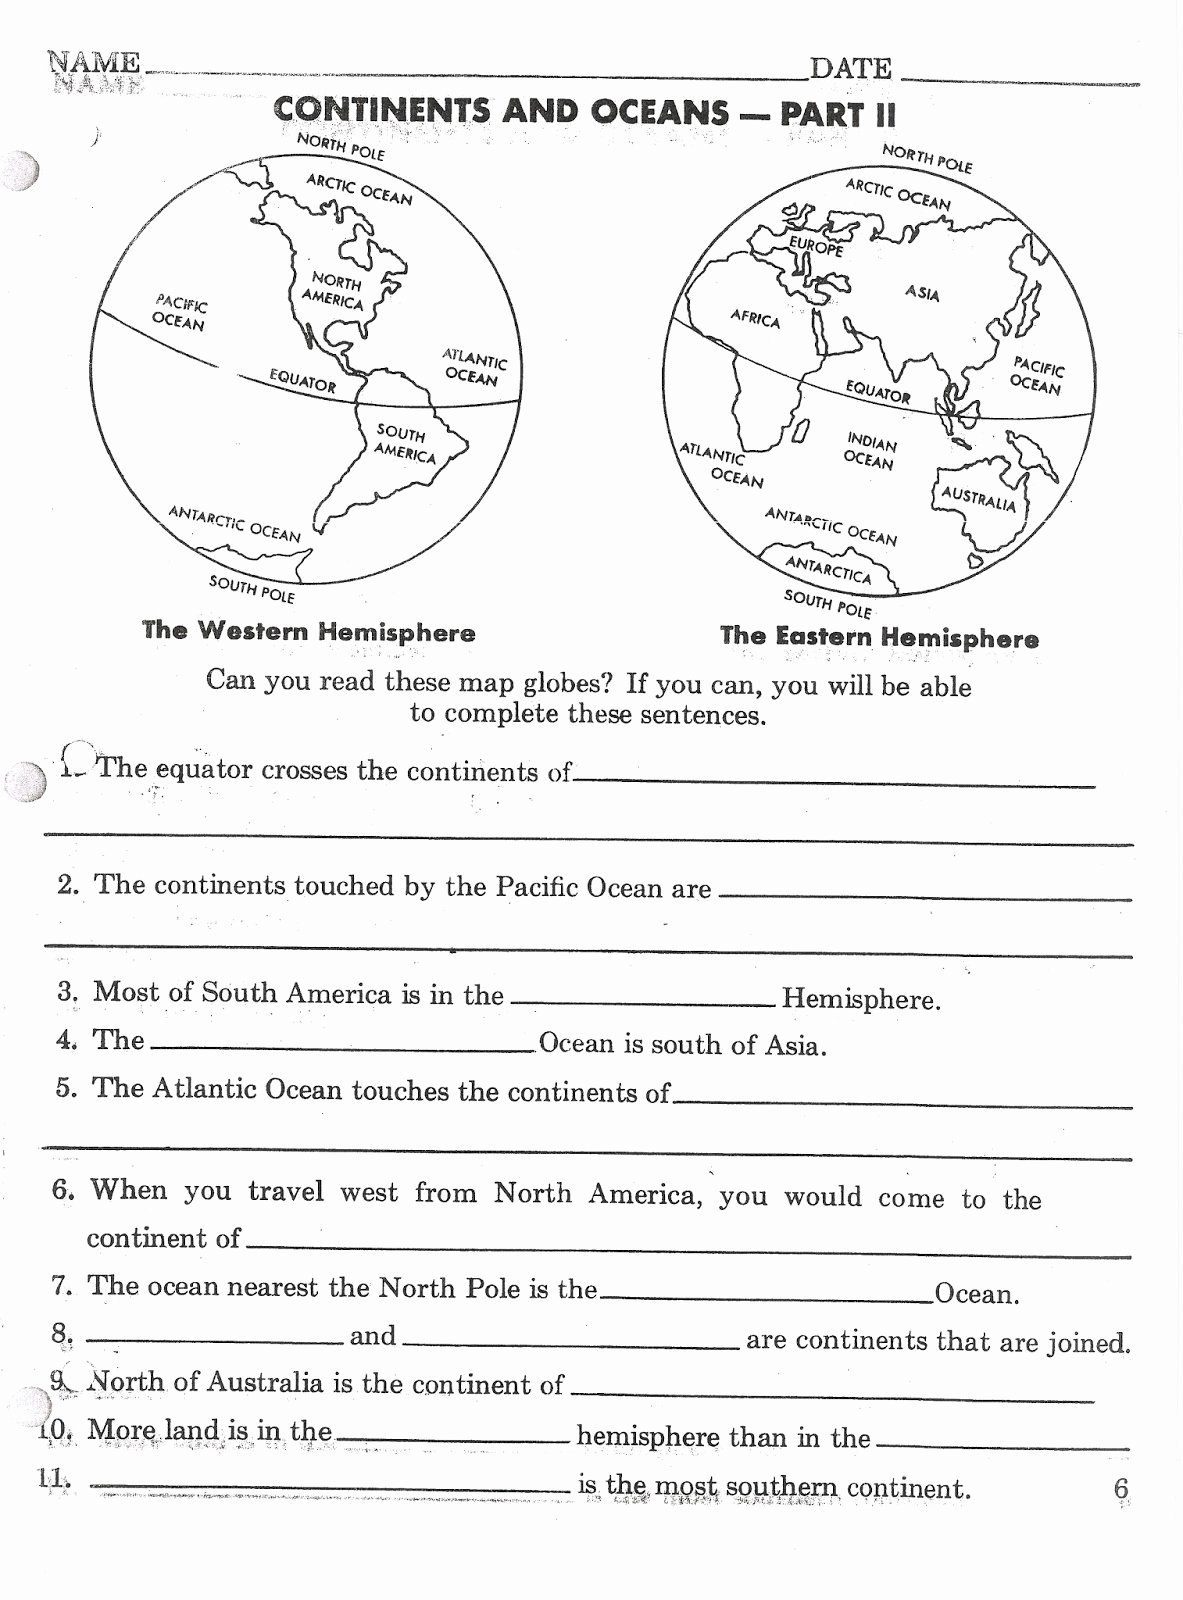 Continents and Oceans Worksheet Best Of Mr Stanton S social Stu S September 2013